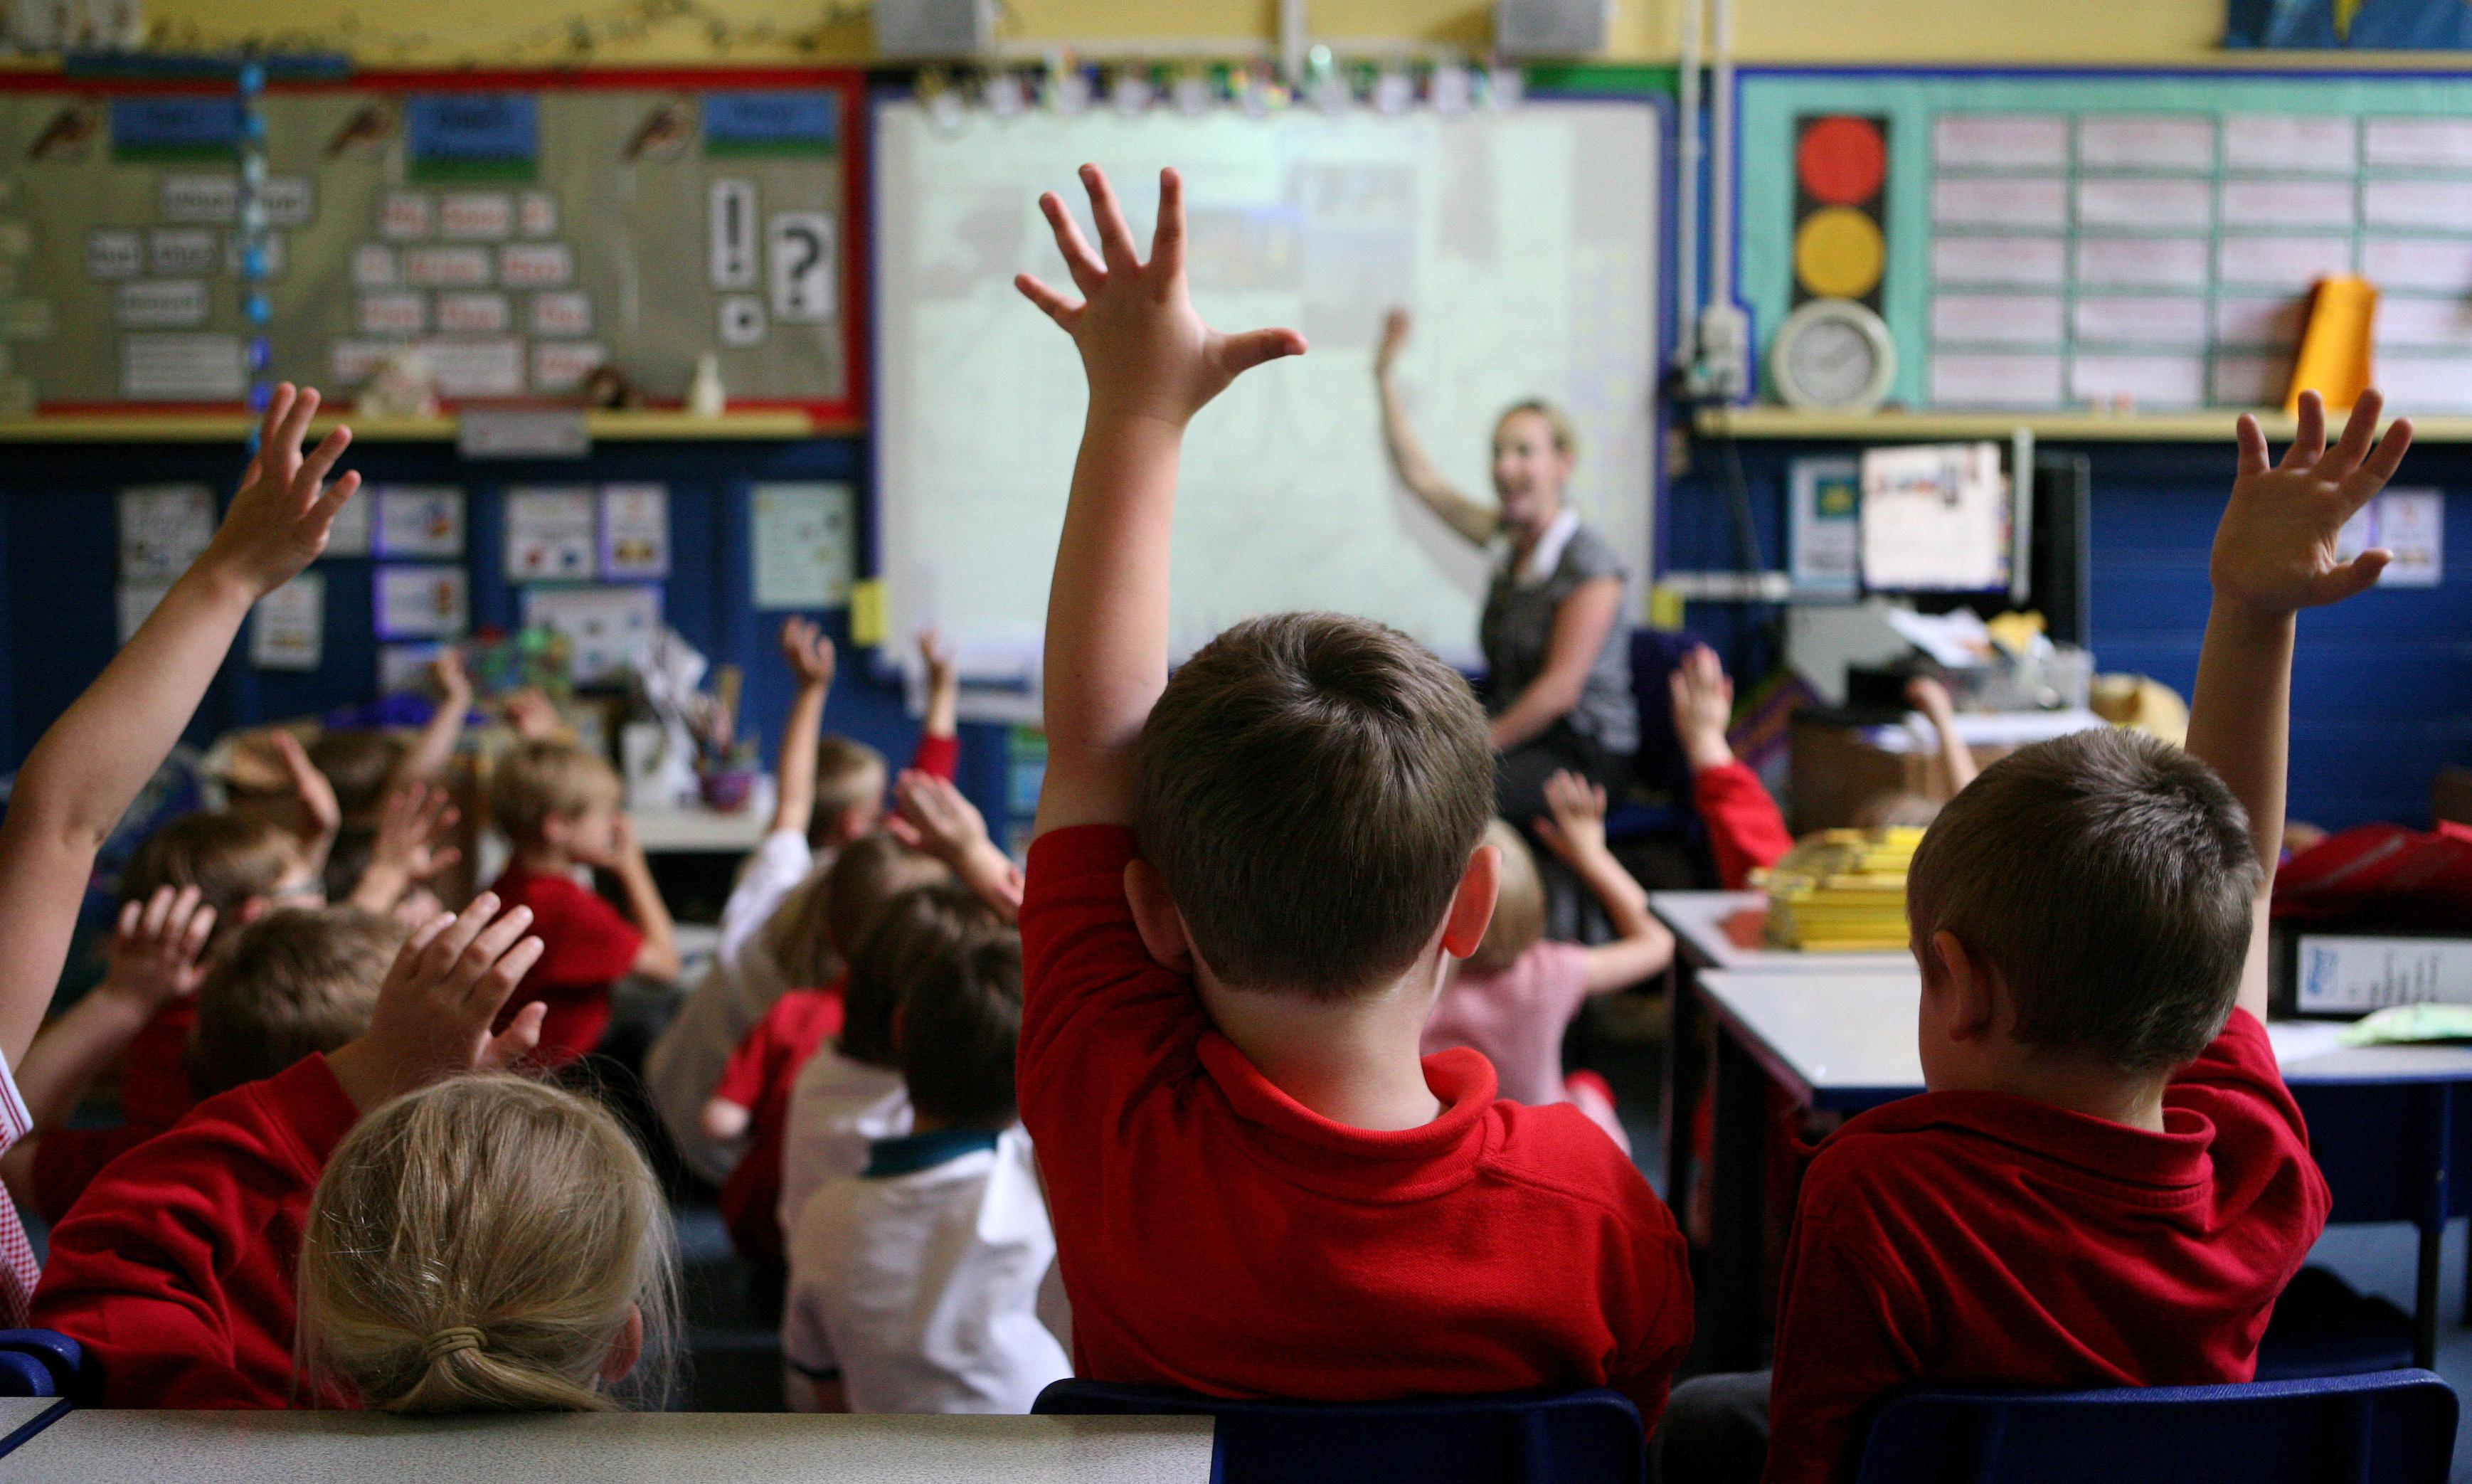 The Guardian view on testing four-year-olds: wrong again